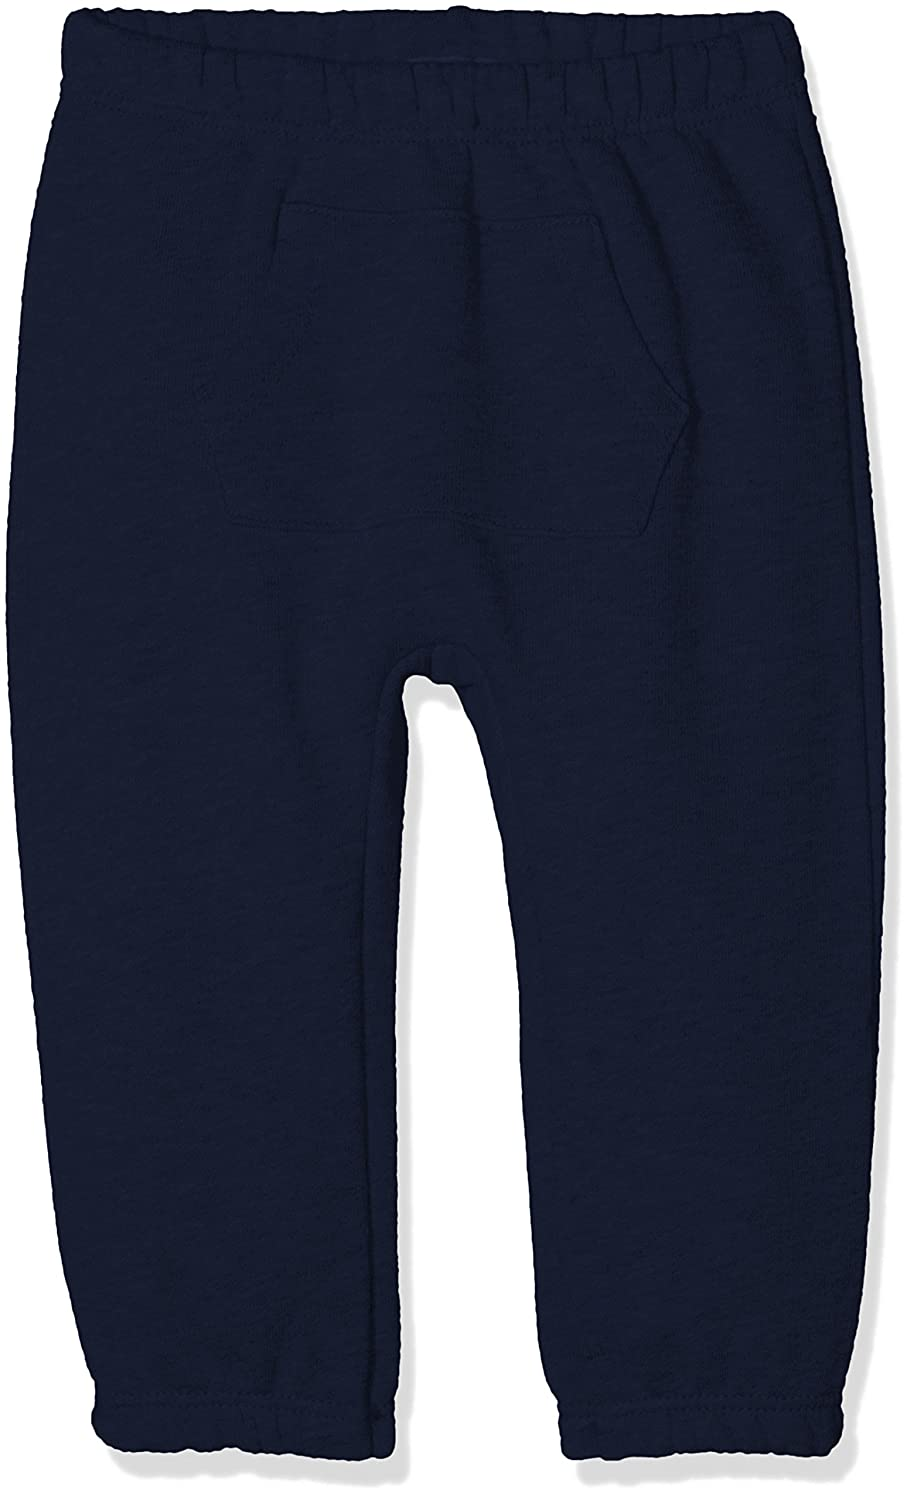 UNITED COLORS OF BENETTON Trousers Pantalon B/éb/é gar/çon